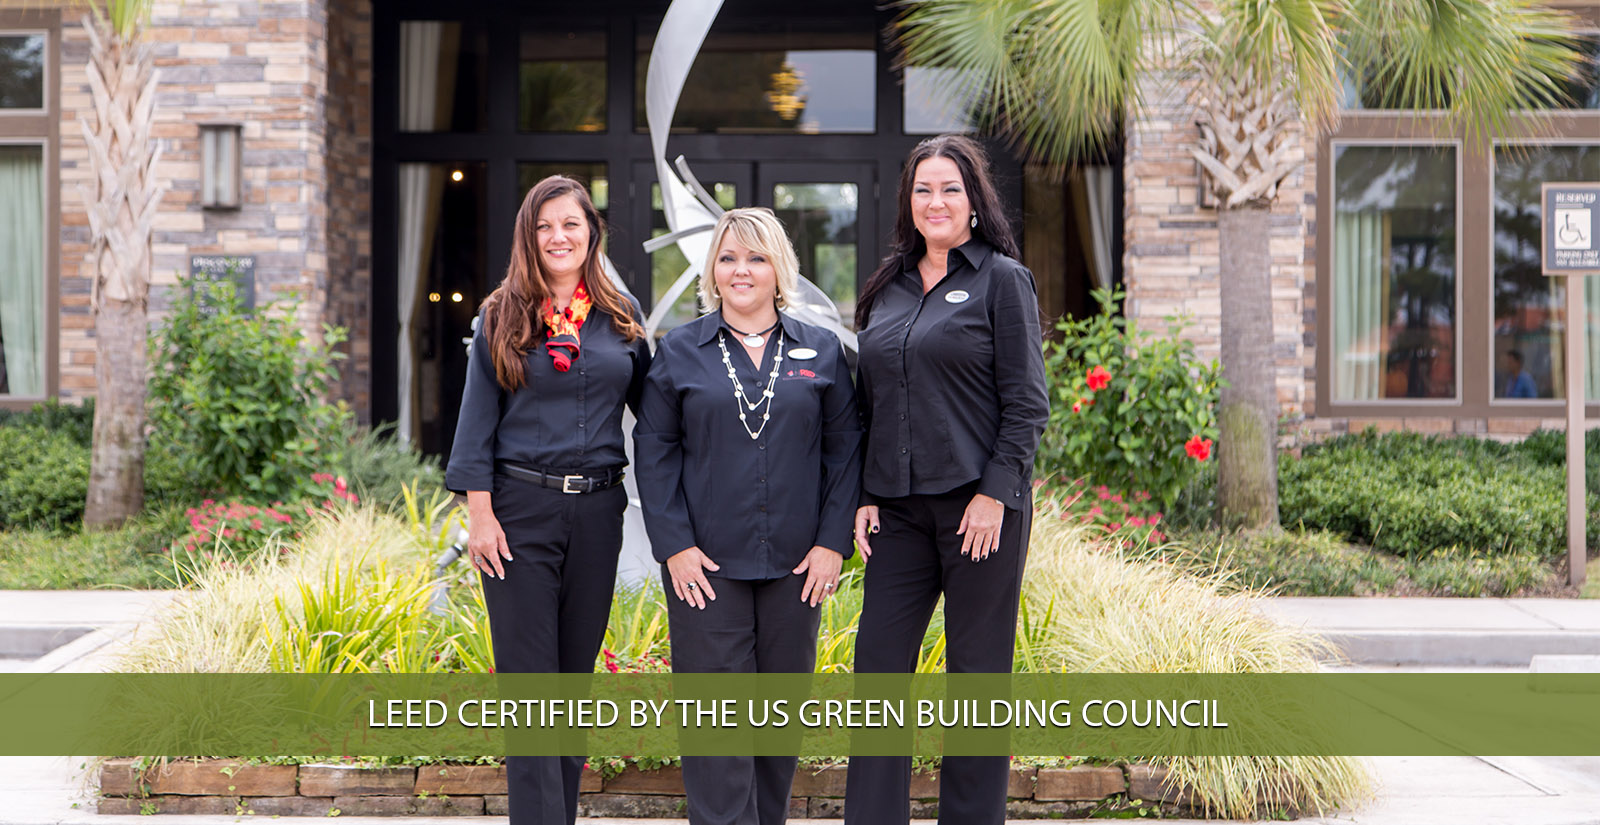 Leed certfied by the us green building council